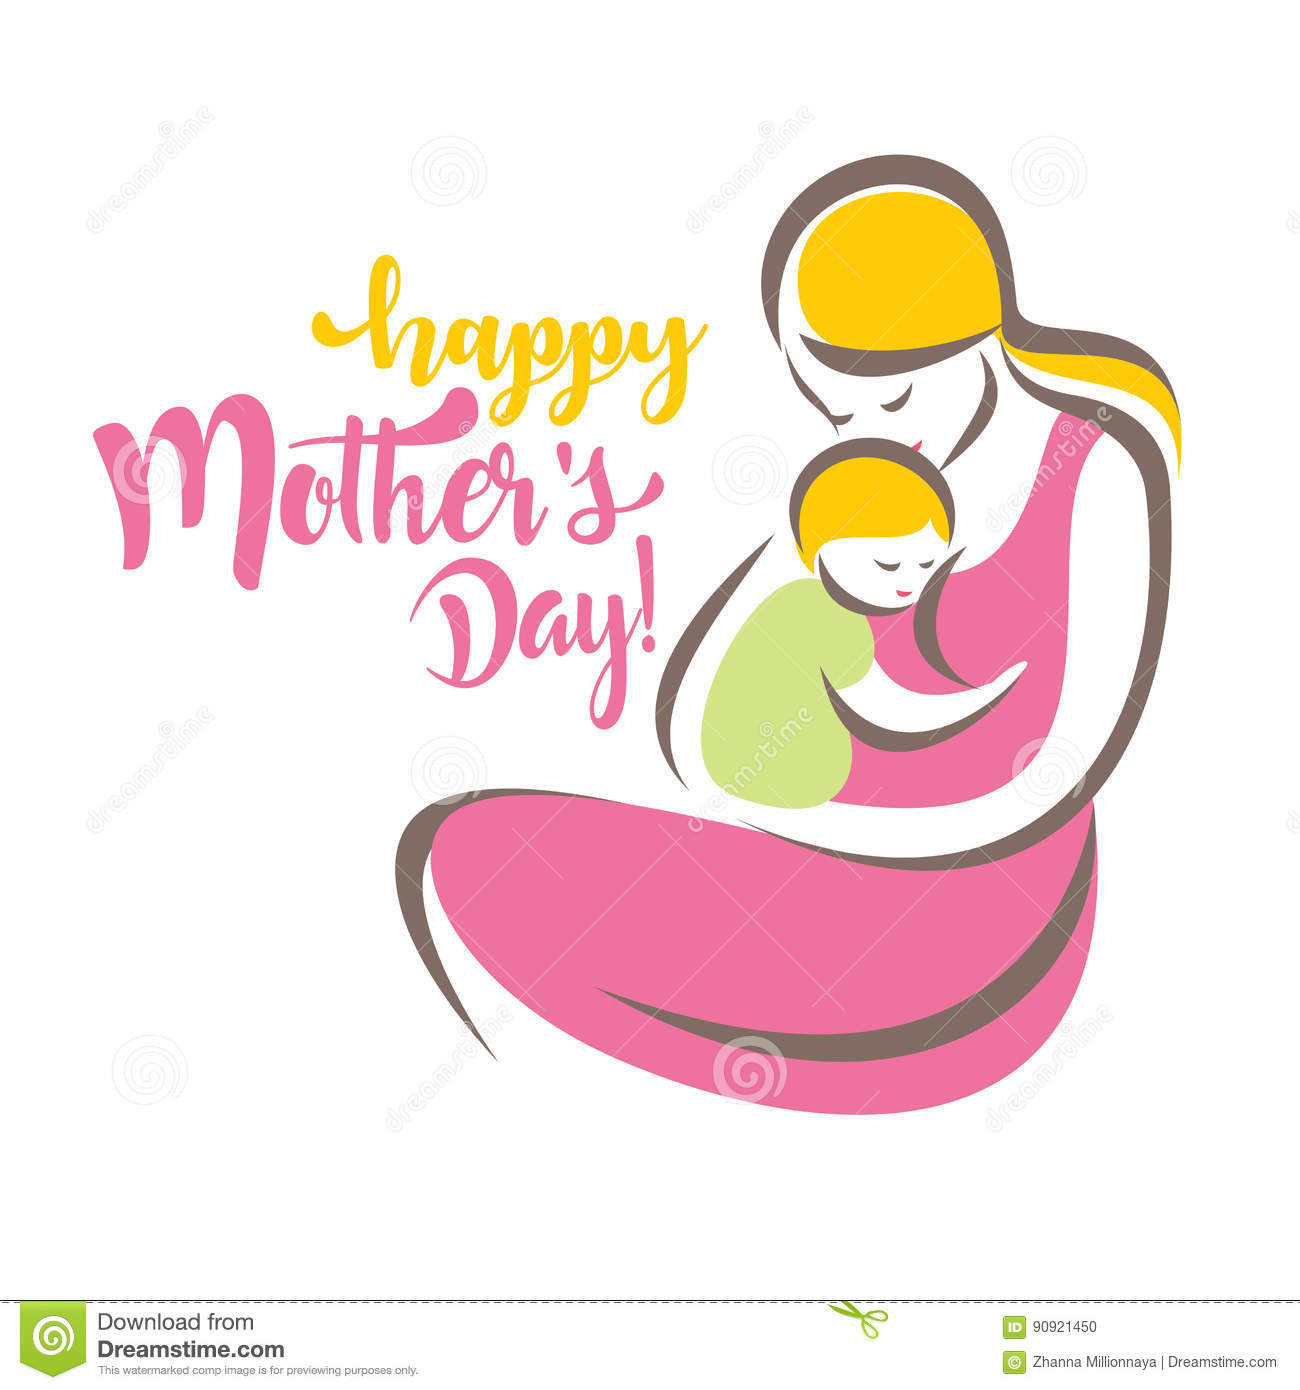 Happy Mothers Day Greeting Card Template Stock Vector - Illustration ...